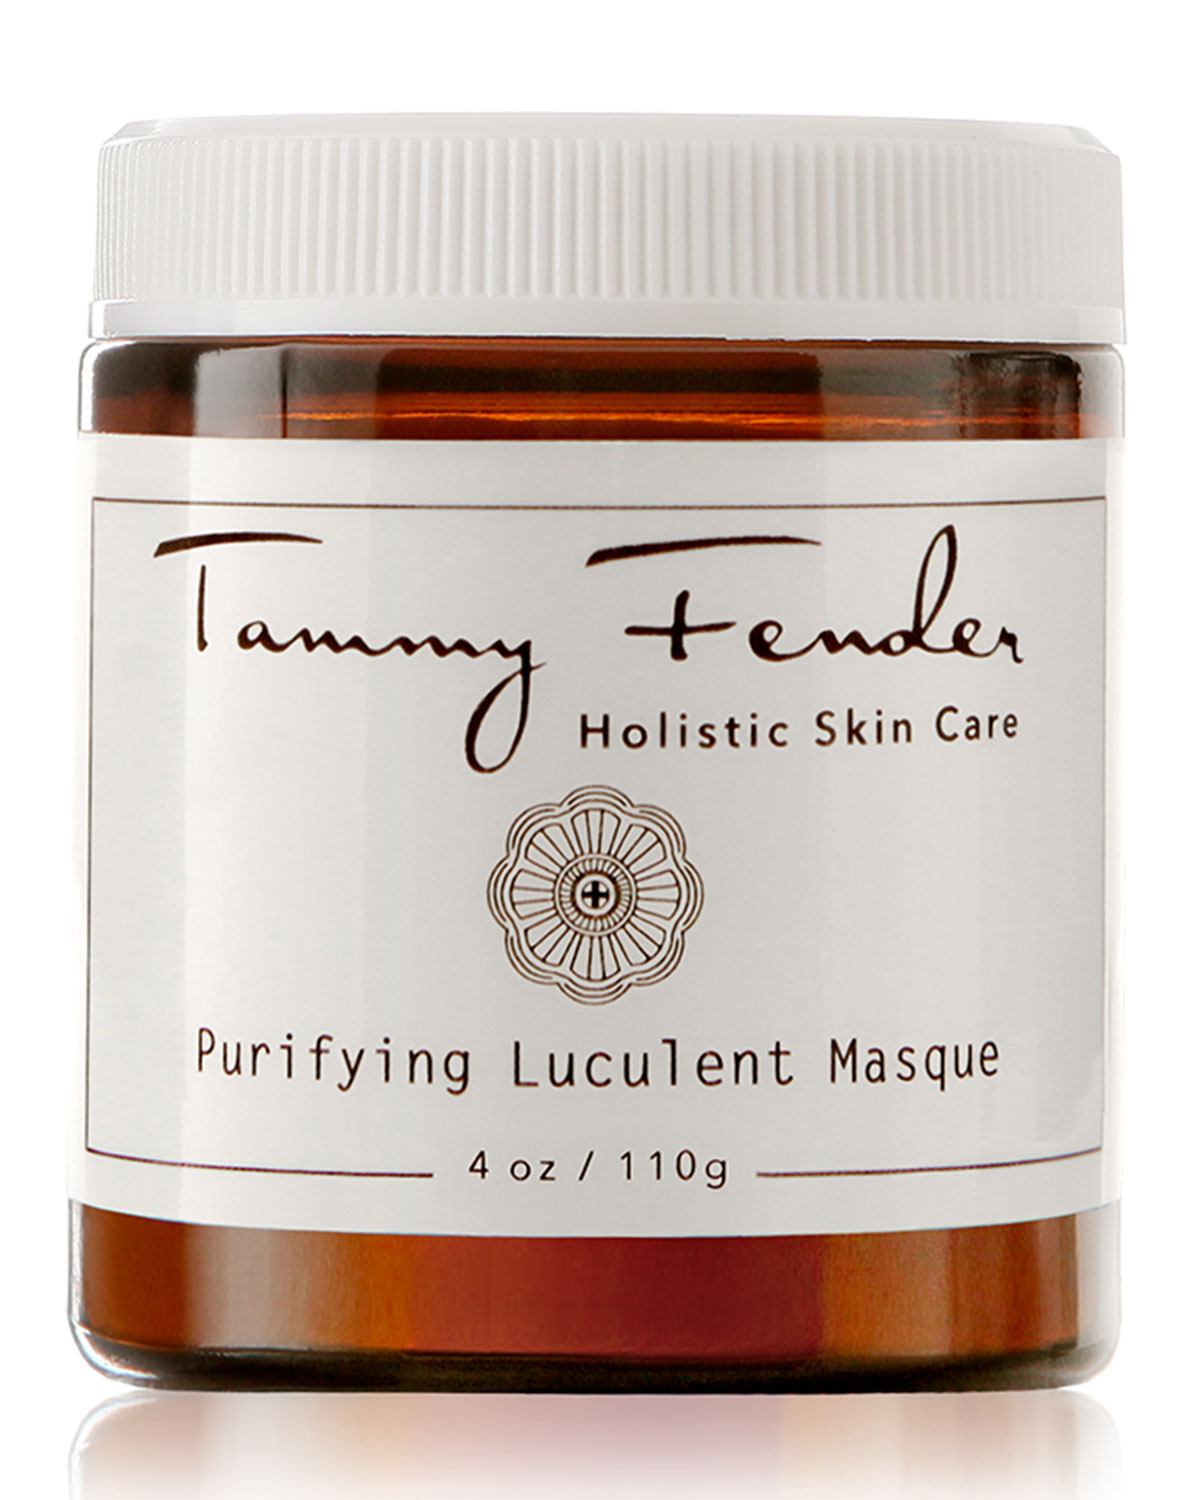 Tammy Fender Holistic Skin Care Purifying Luculent Masque, 4 oz.